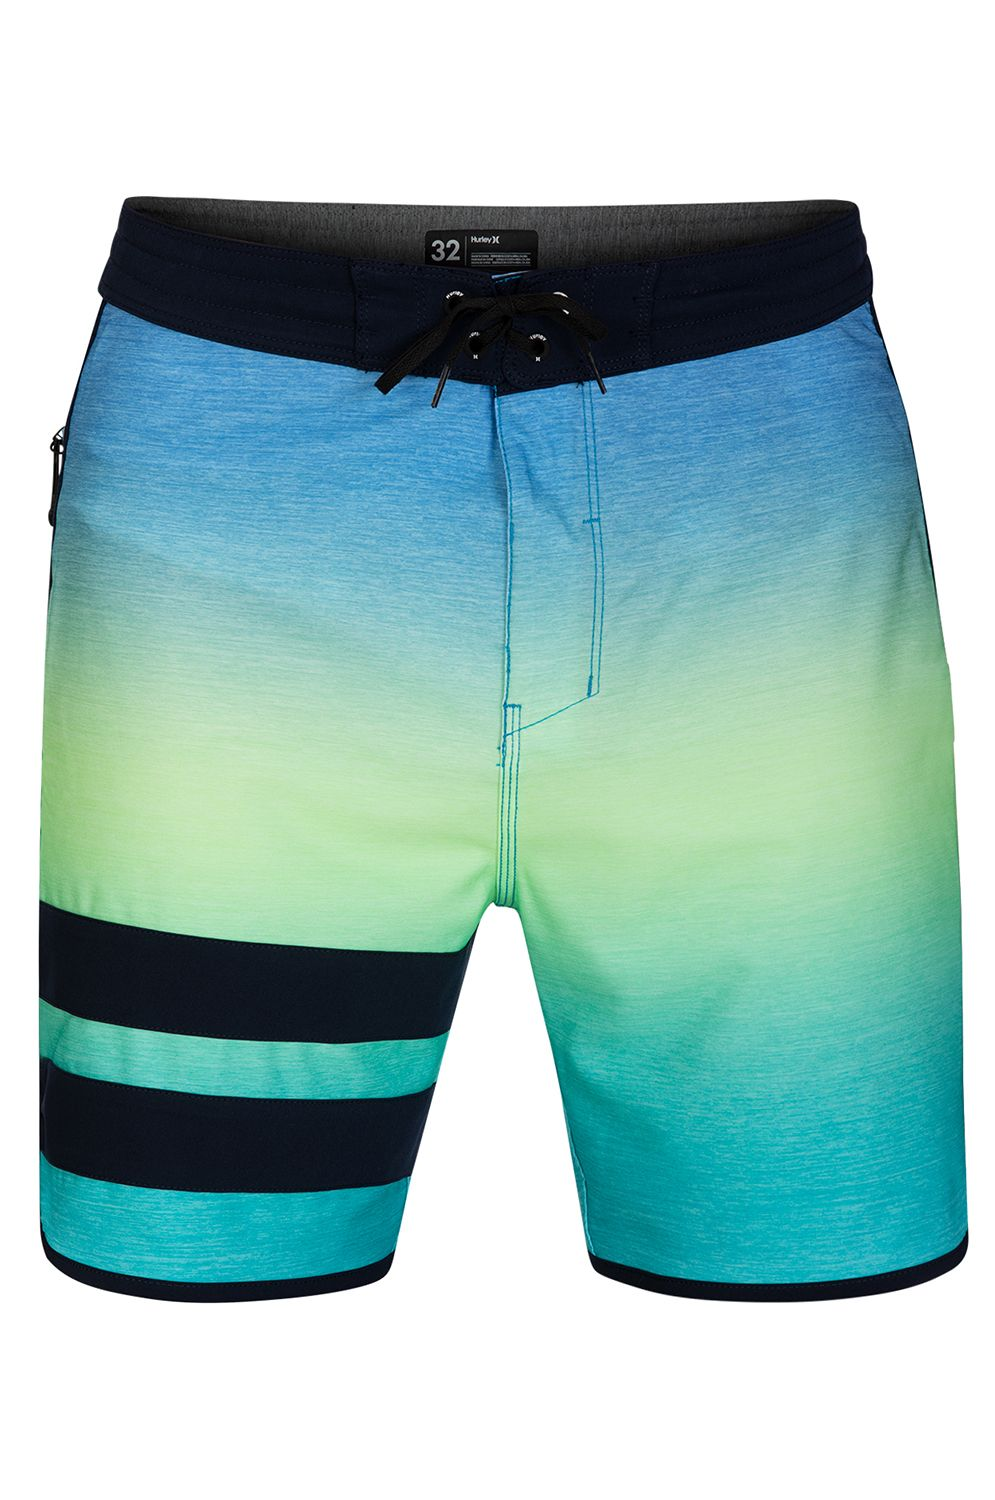 Boardshorts Hurley PHTM BLOCK PARTY KEEP COOL 18' Pacific Blue